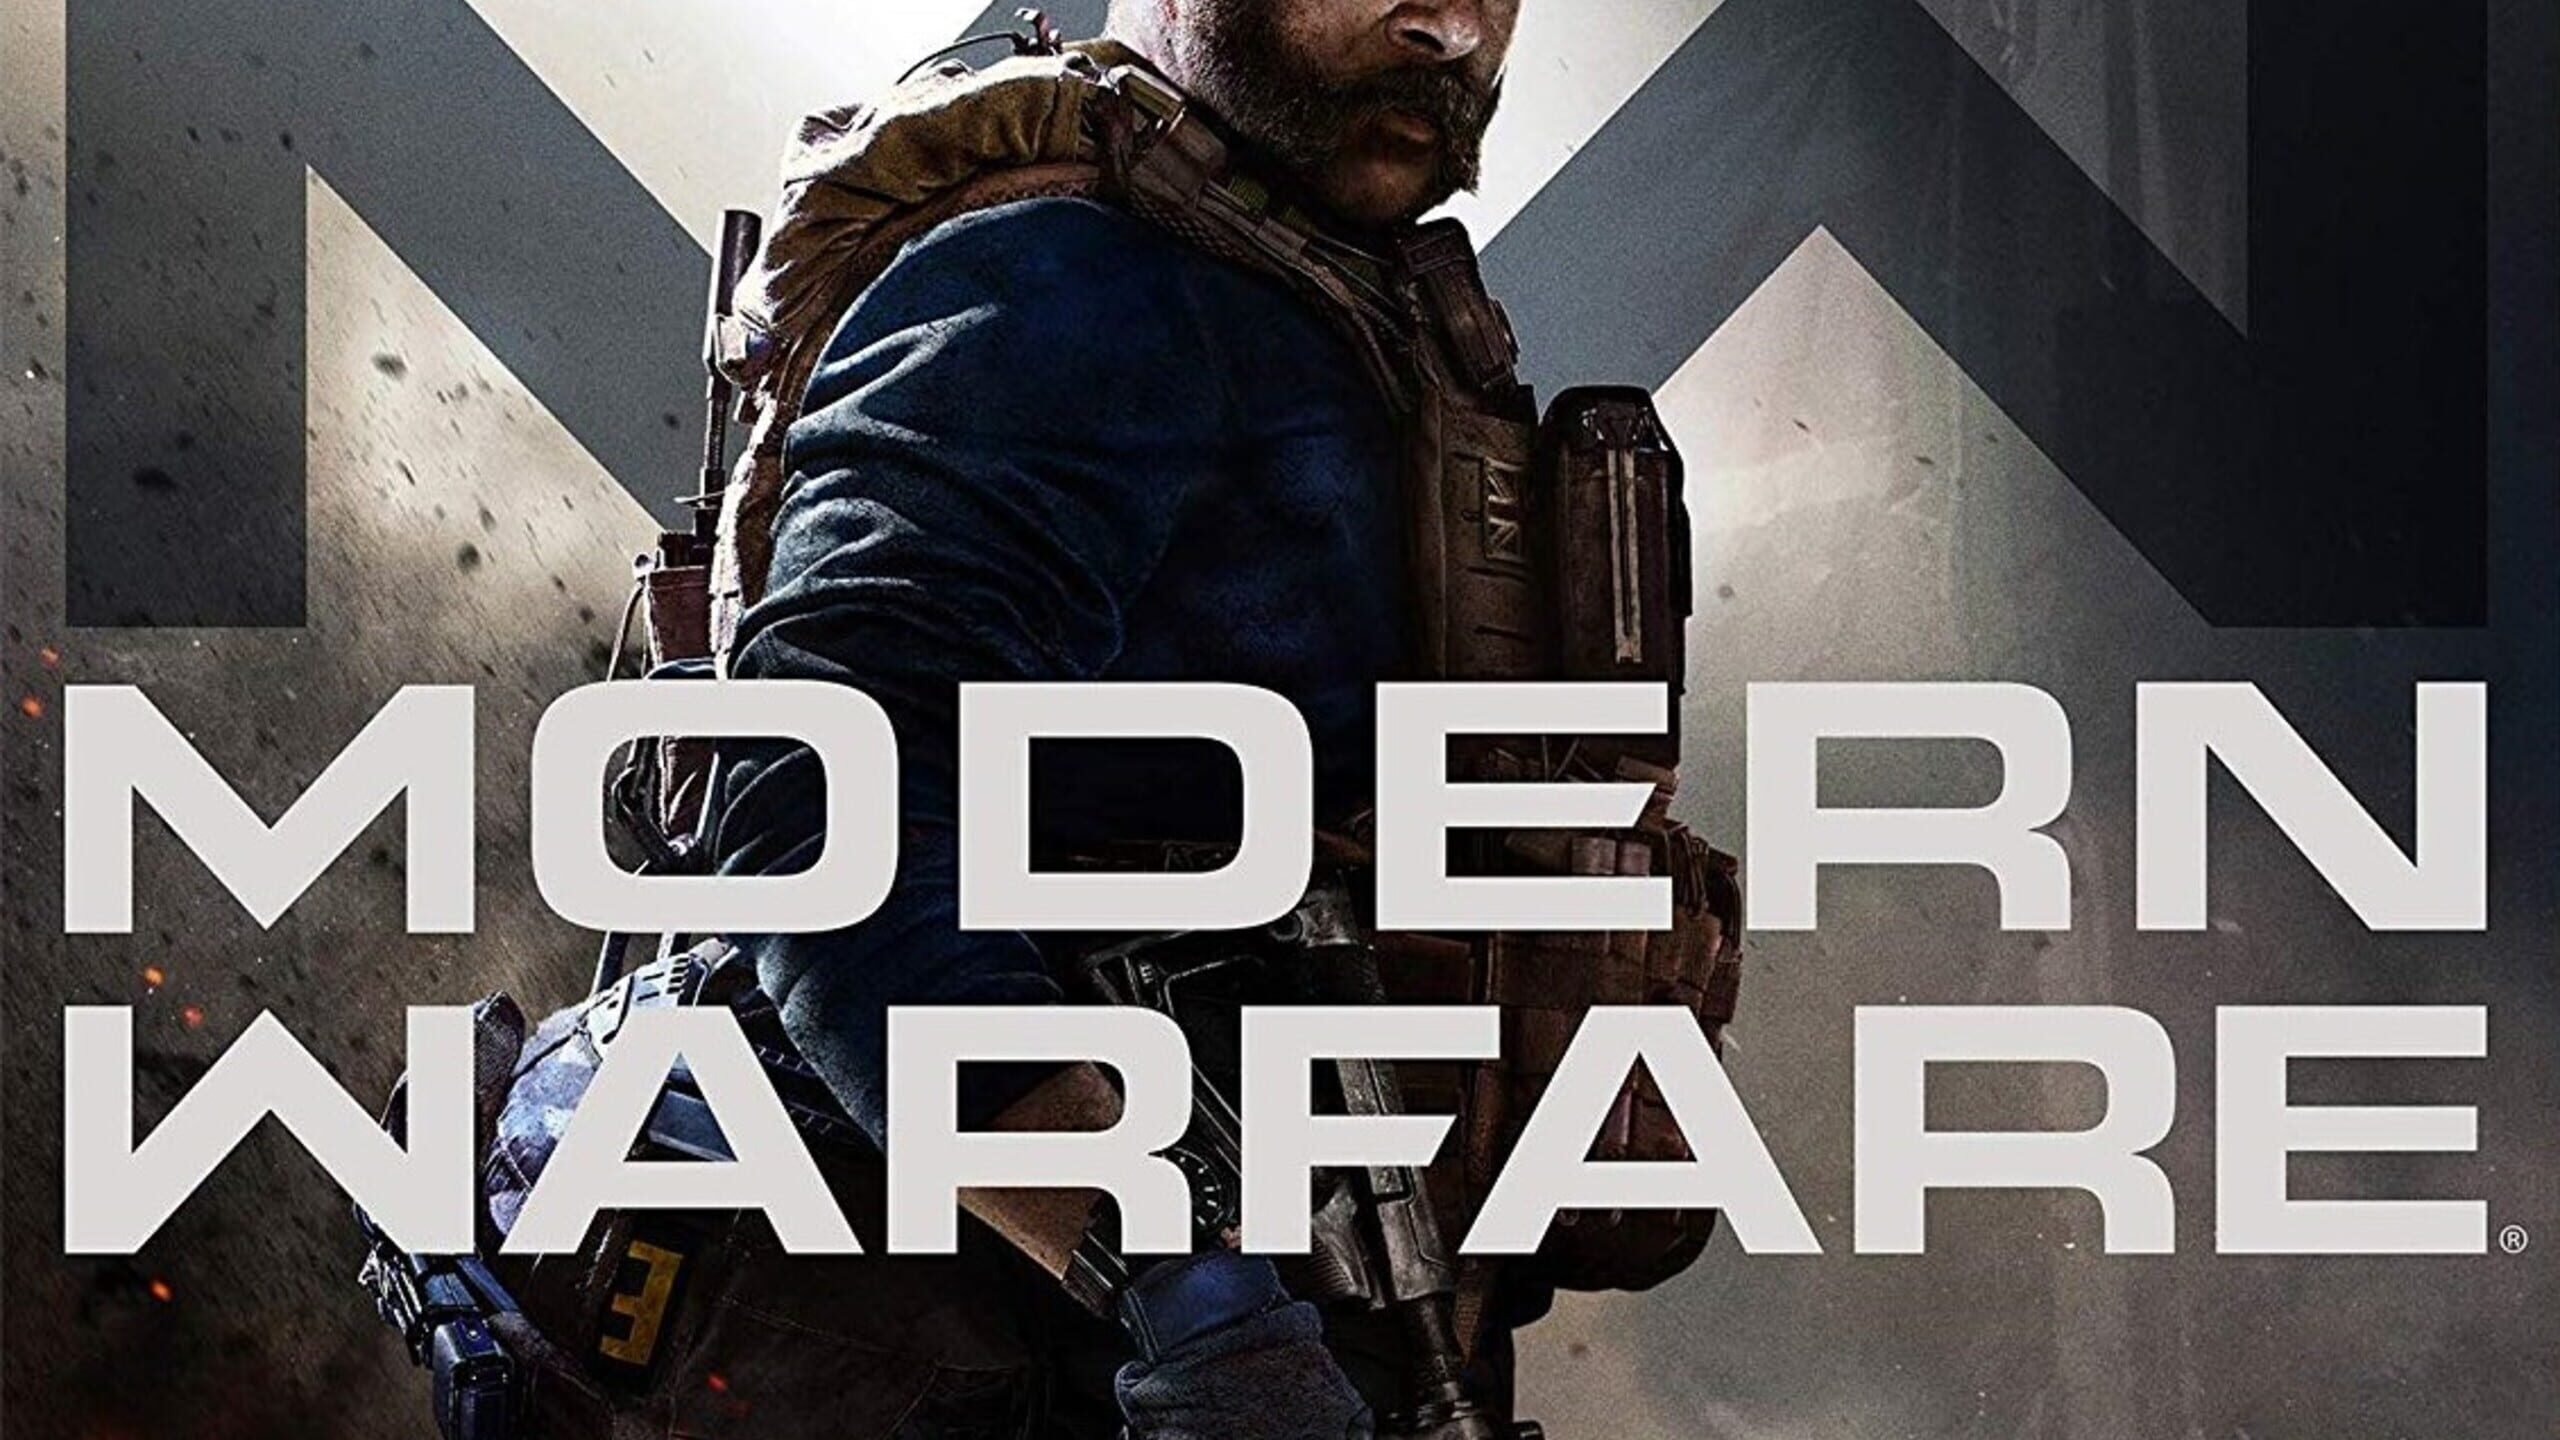 game cover art for Call Of Duty: Modern Warfare